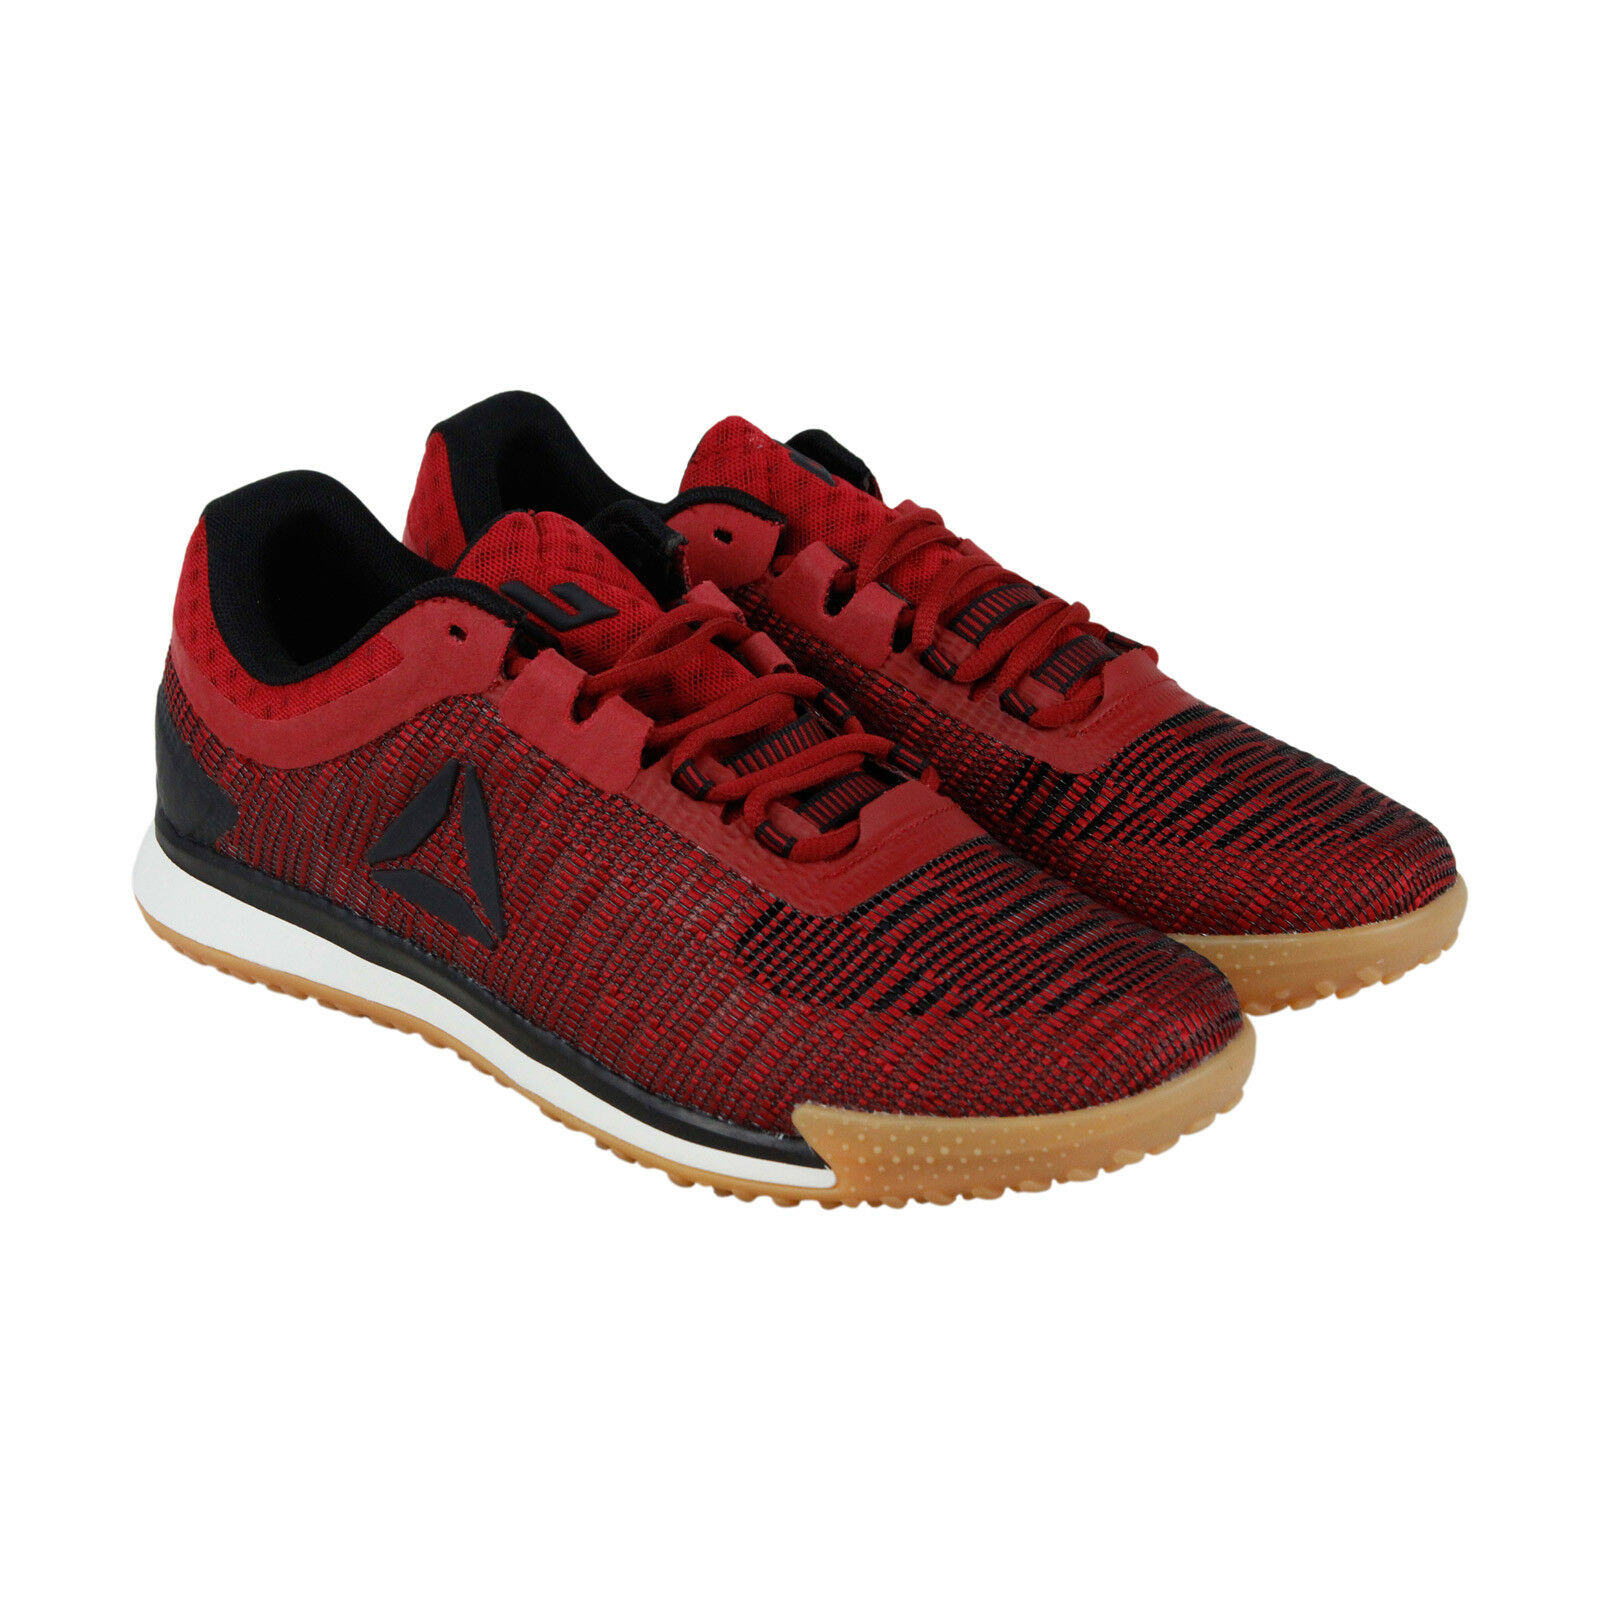 Reebok Jj Ii Niedrig  Uomo ROT Textile Schuhes Athletic Lace Up Training Schuhes Textile 7f8816